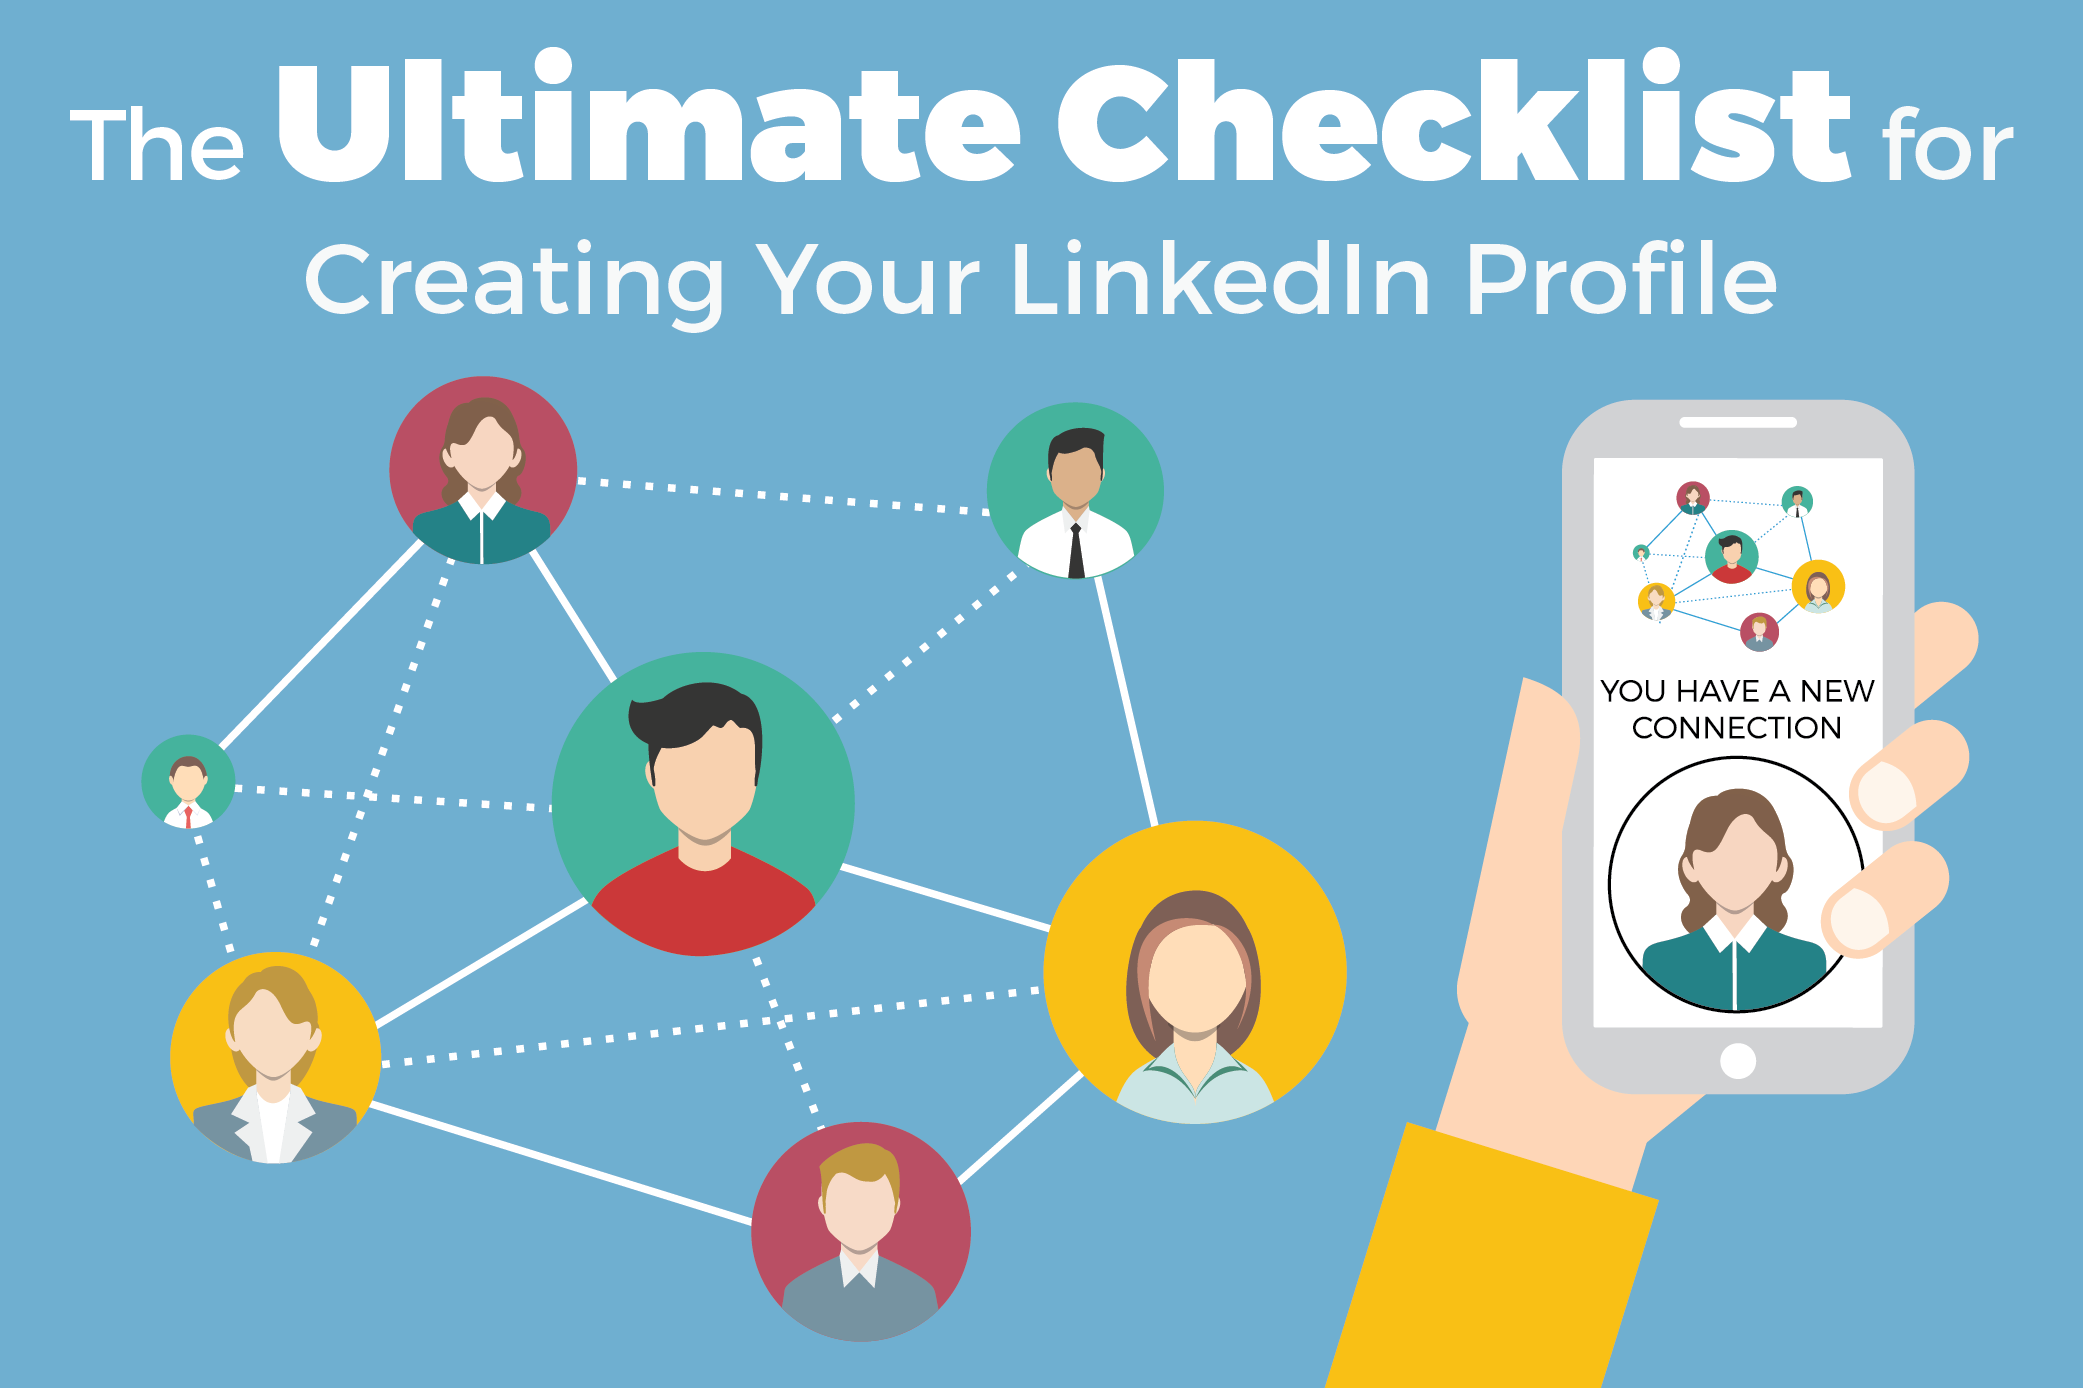 The Ultimate Checklist for creating Your LinkedIn Profile